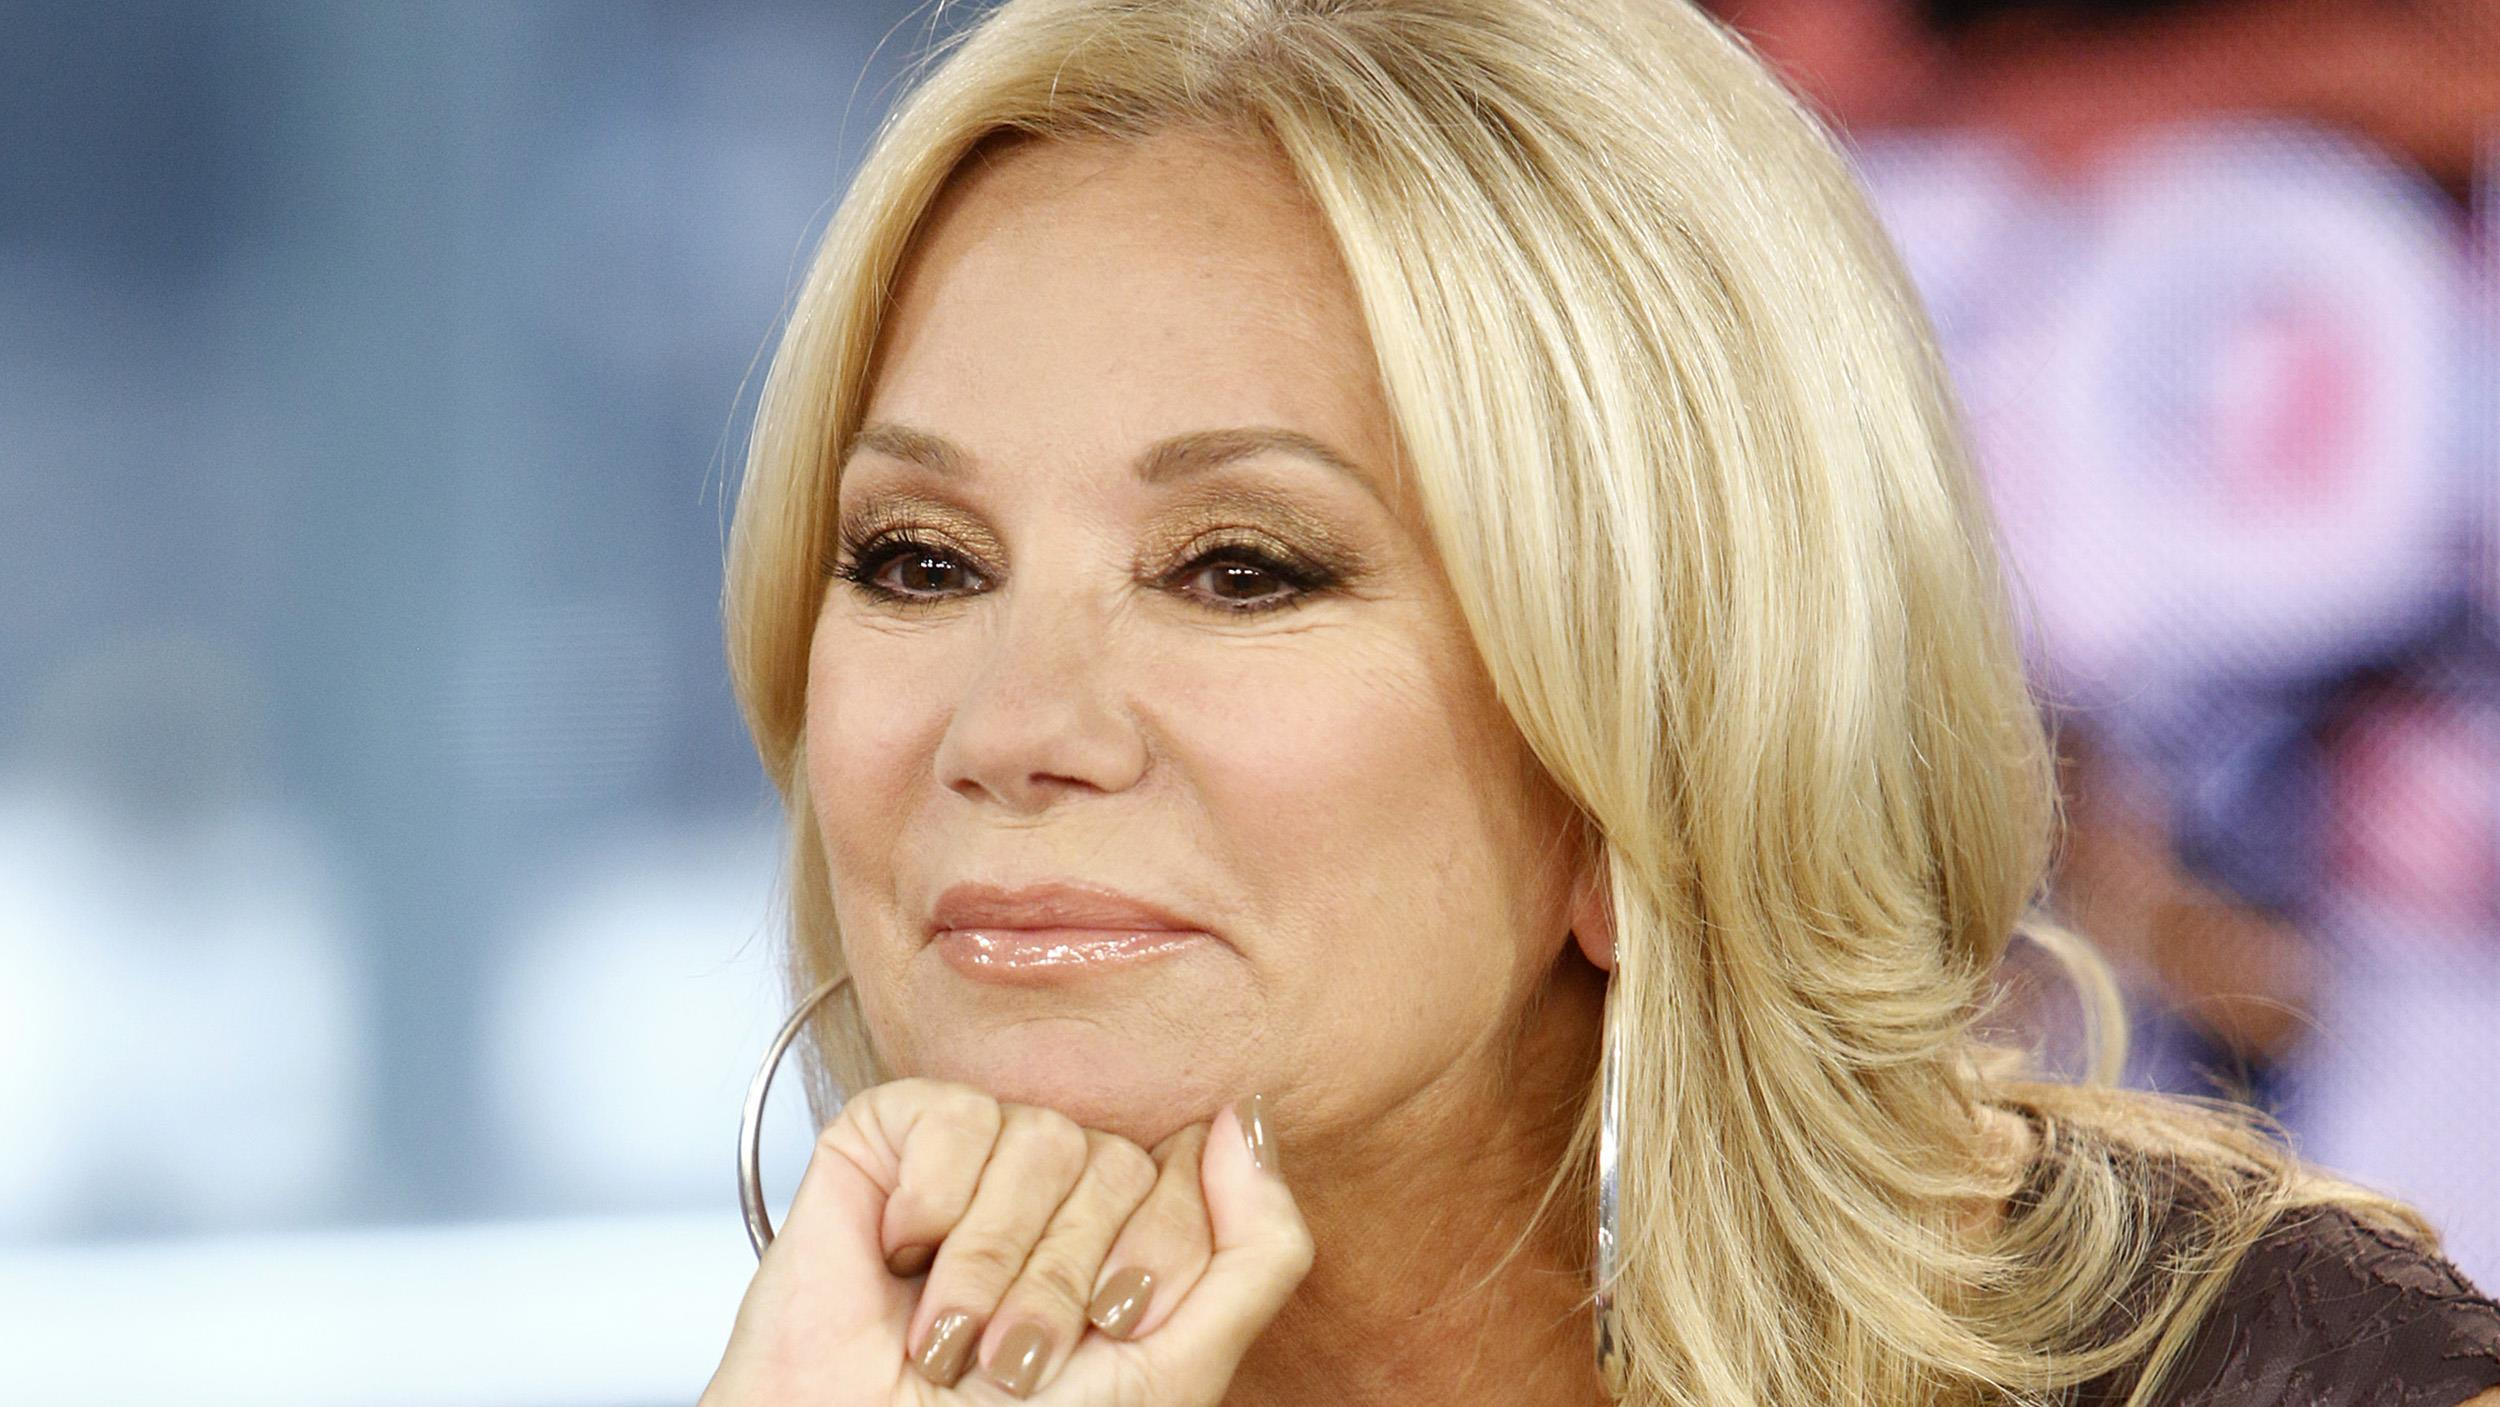 kathie lee gifford housekathie lee gifford young, kathie lee gifford song, kathie lee gifford photo, kathie lee gifford south park, kathie lee gifford, kathie lee gifford age, kathie lee gifford wiki, kathie lee gifford net worth, kathie lee gifford house, kathie lee gifford daughter, kathie lee gifford twitter, kathie lee gifford salary, kathie lee gifford wine, kathie lee gifford son, kathie lee gifford today show, kathie lee gifford instagram, kathie lee gifford plastic surgery, kathie lee gifford daughter wedding, kathie lee gifford husband, kathie lee gifford fired